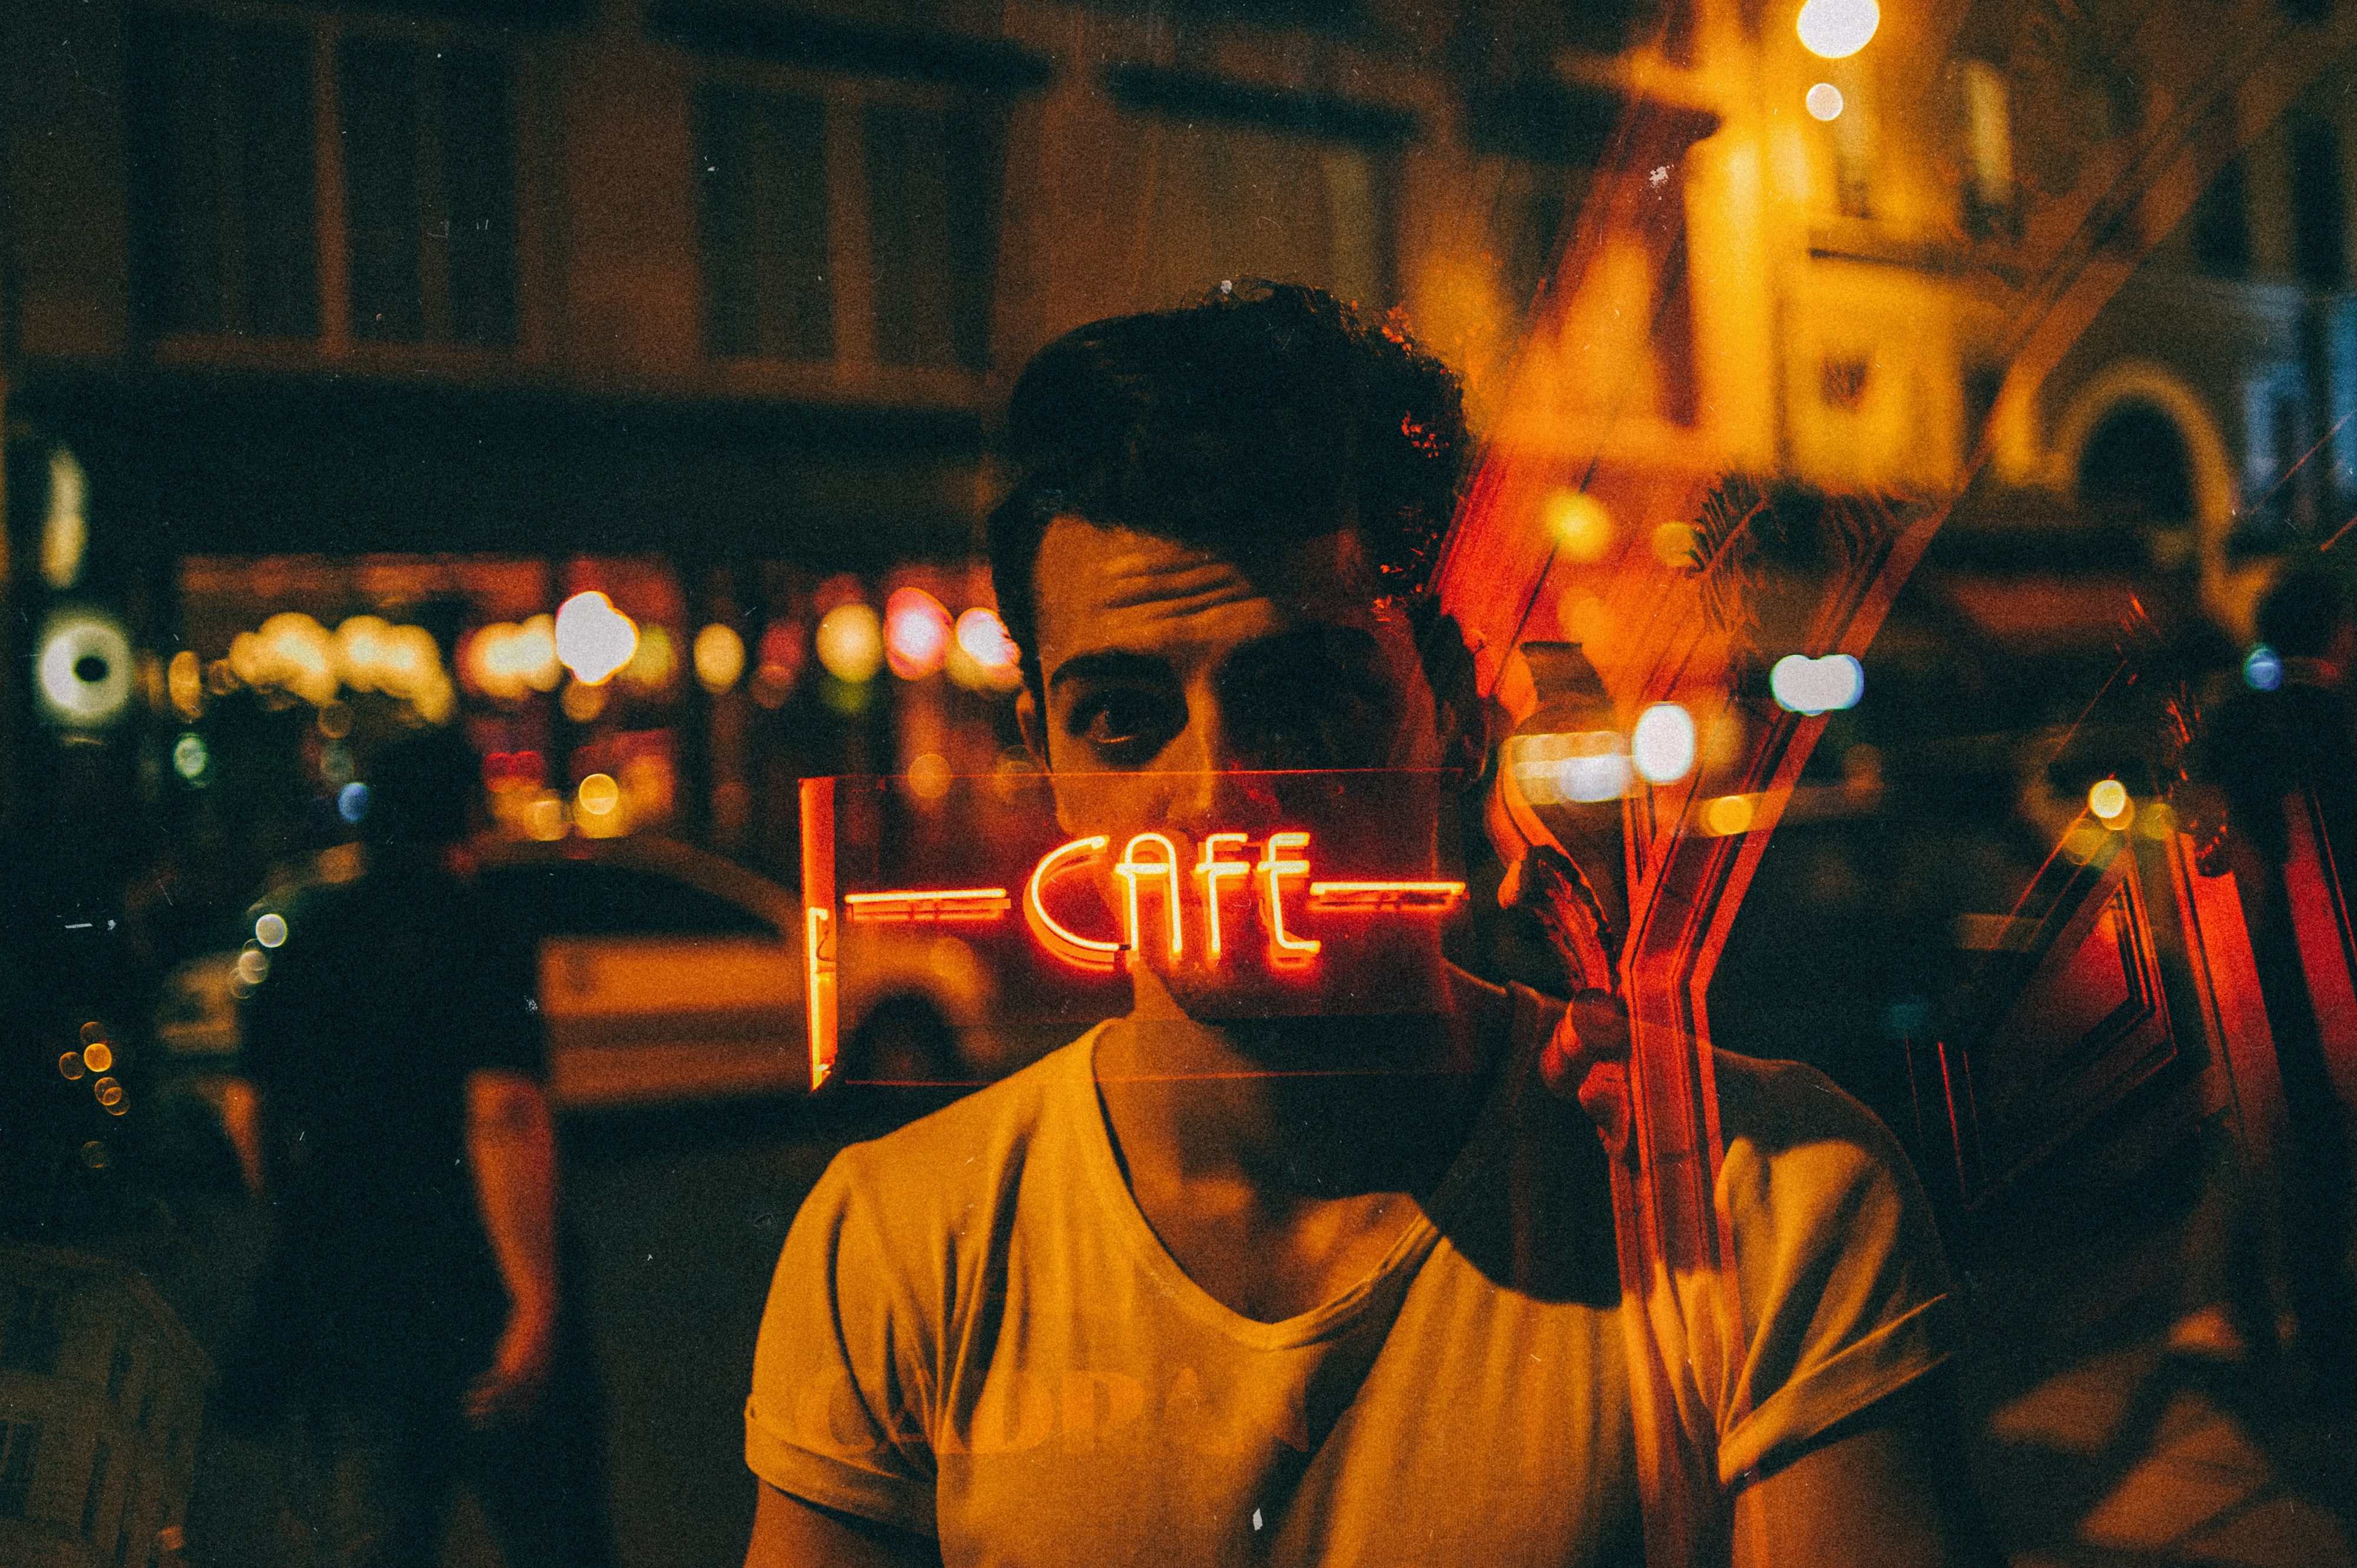 A man standing with a neon cafe sign covering his face in the window reflection